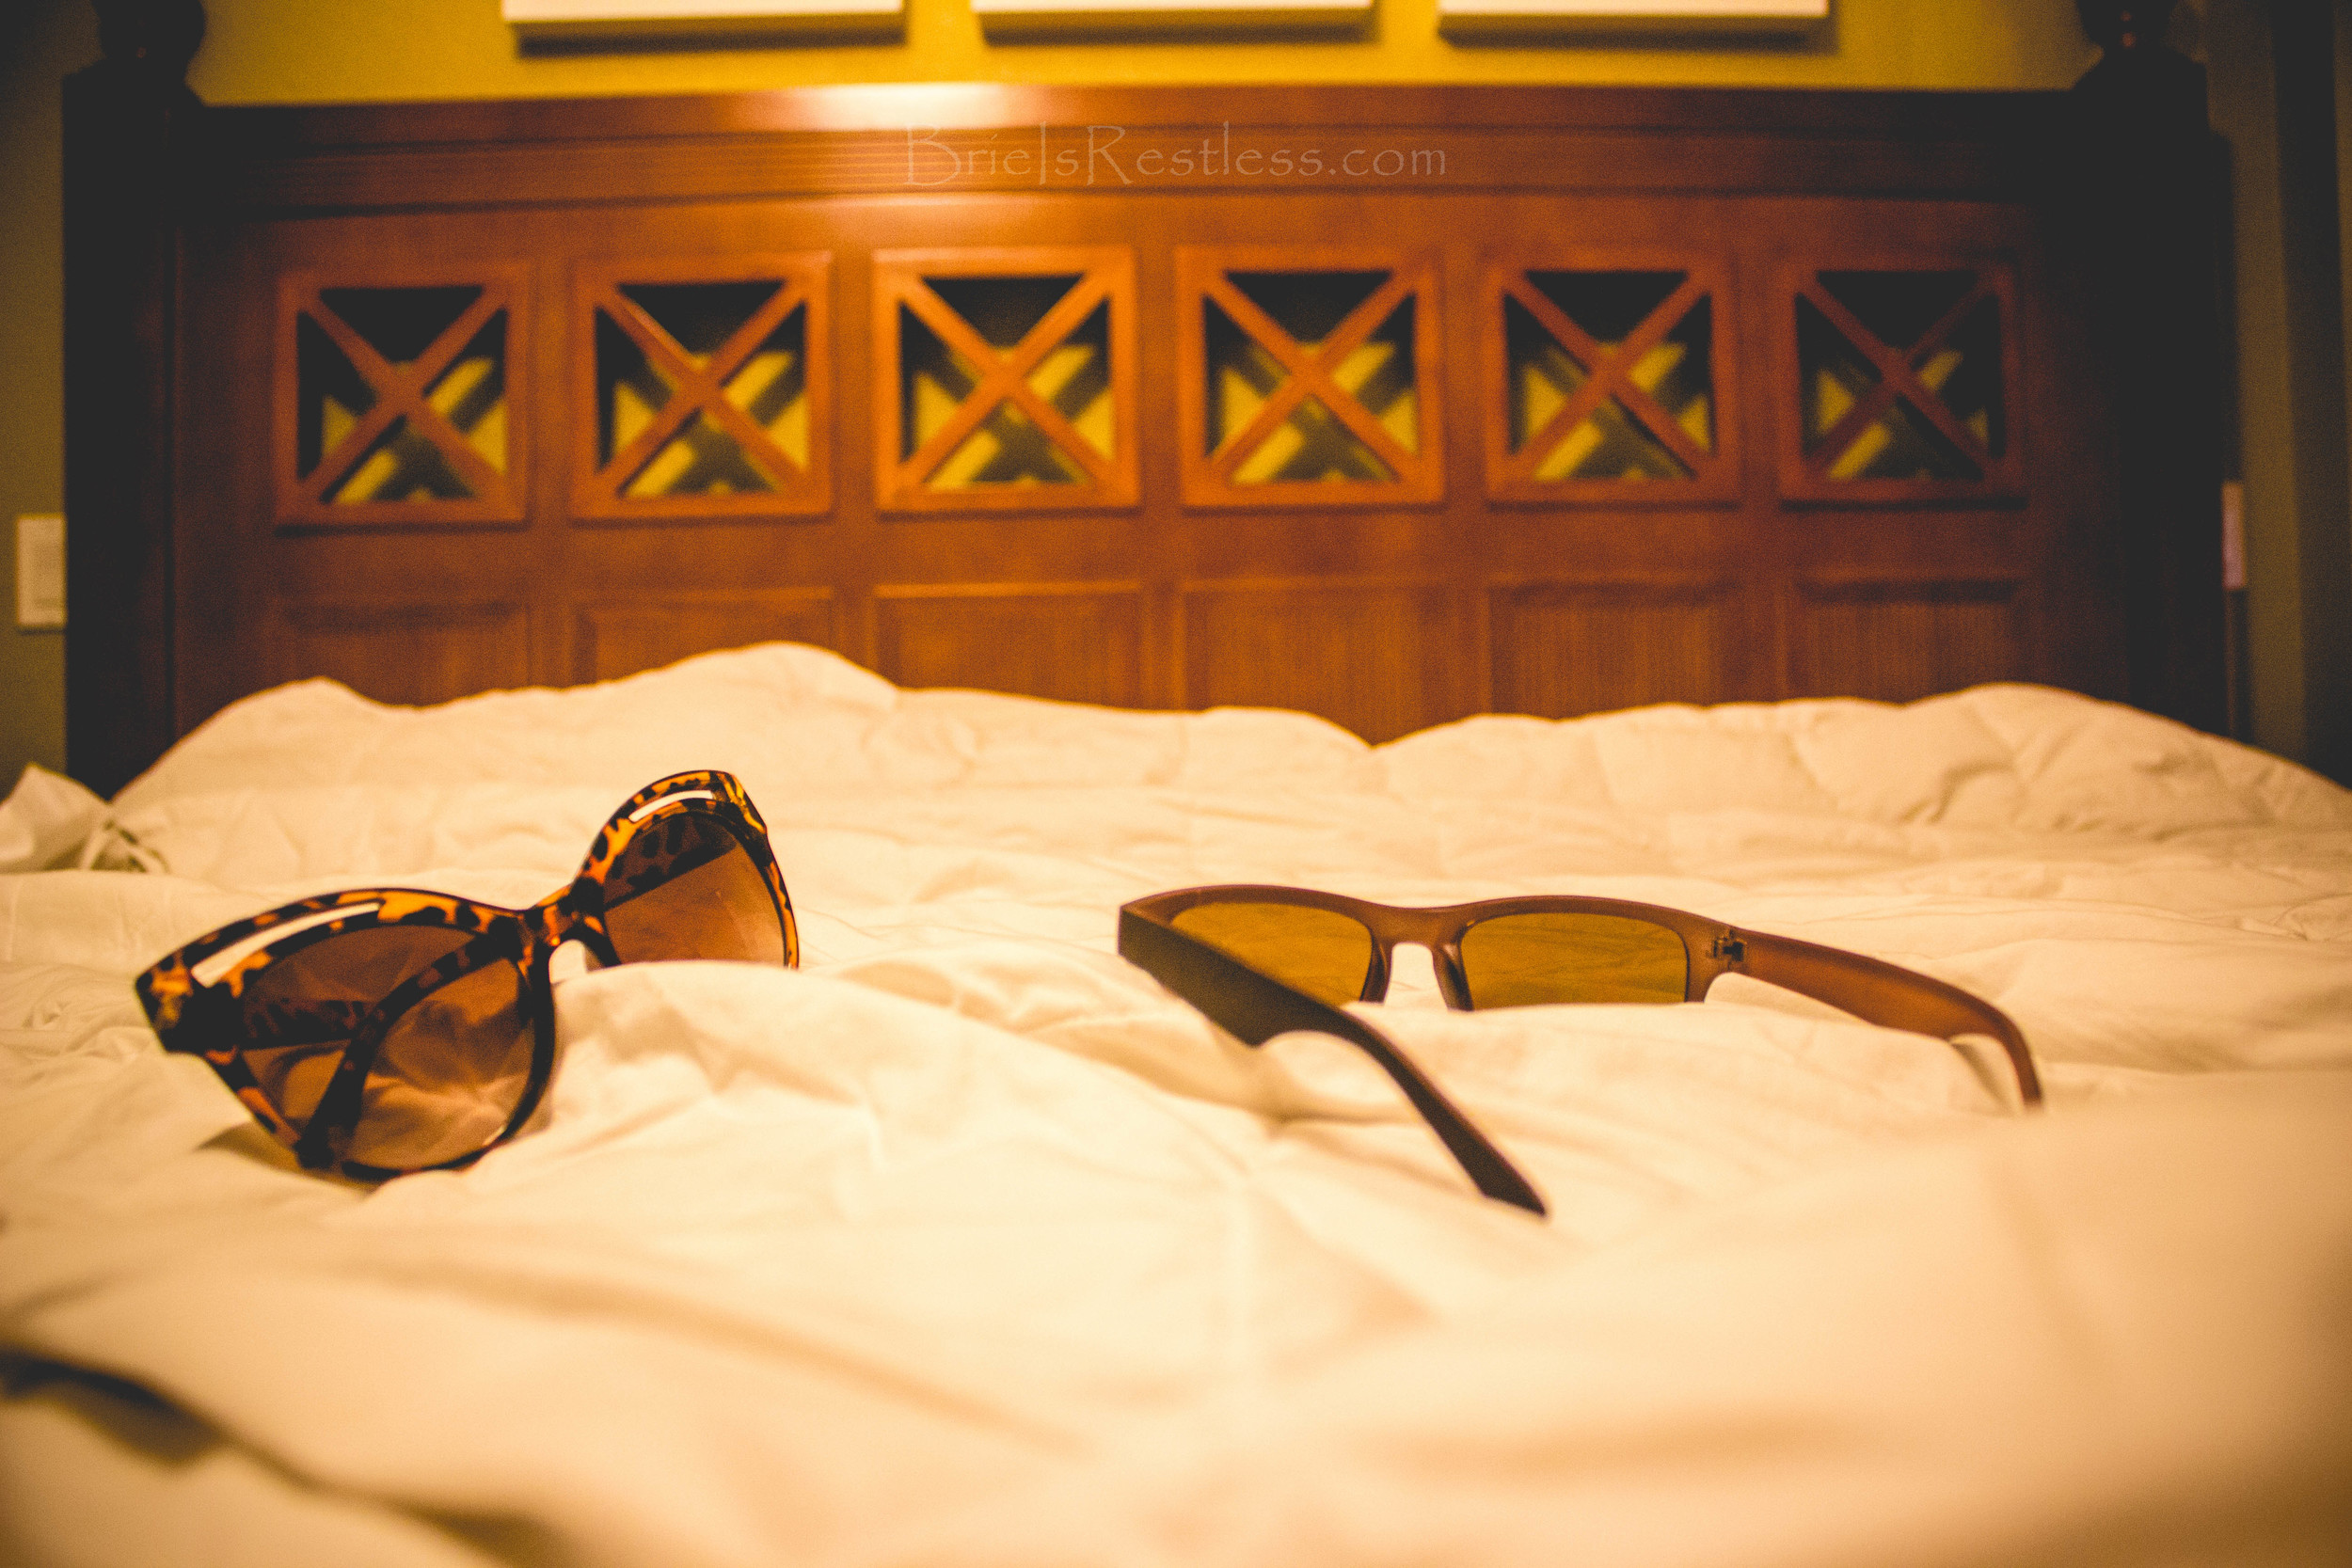 Bed, Hotel, Hotel Room, June 2015, Orlando Florida, Sunglasses, Westgate Resort (1 of 1).jpg